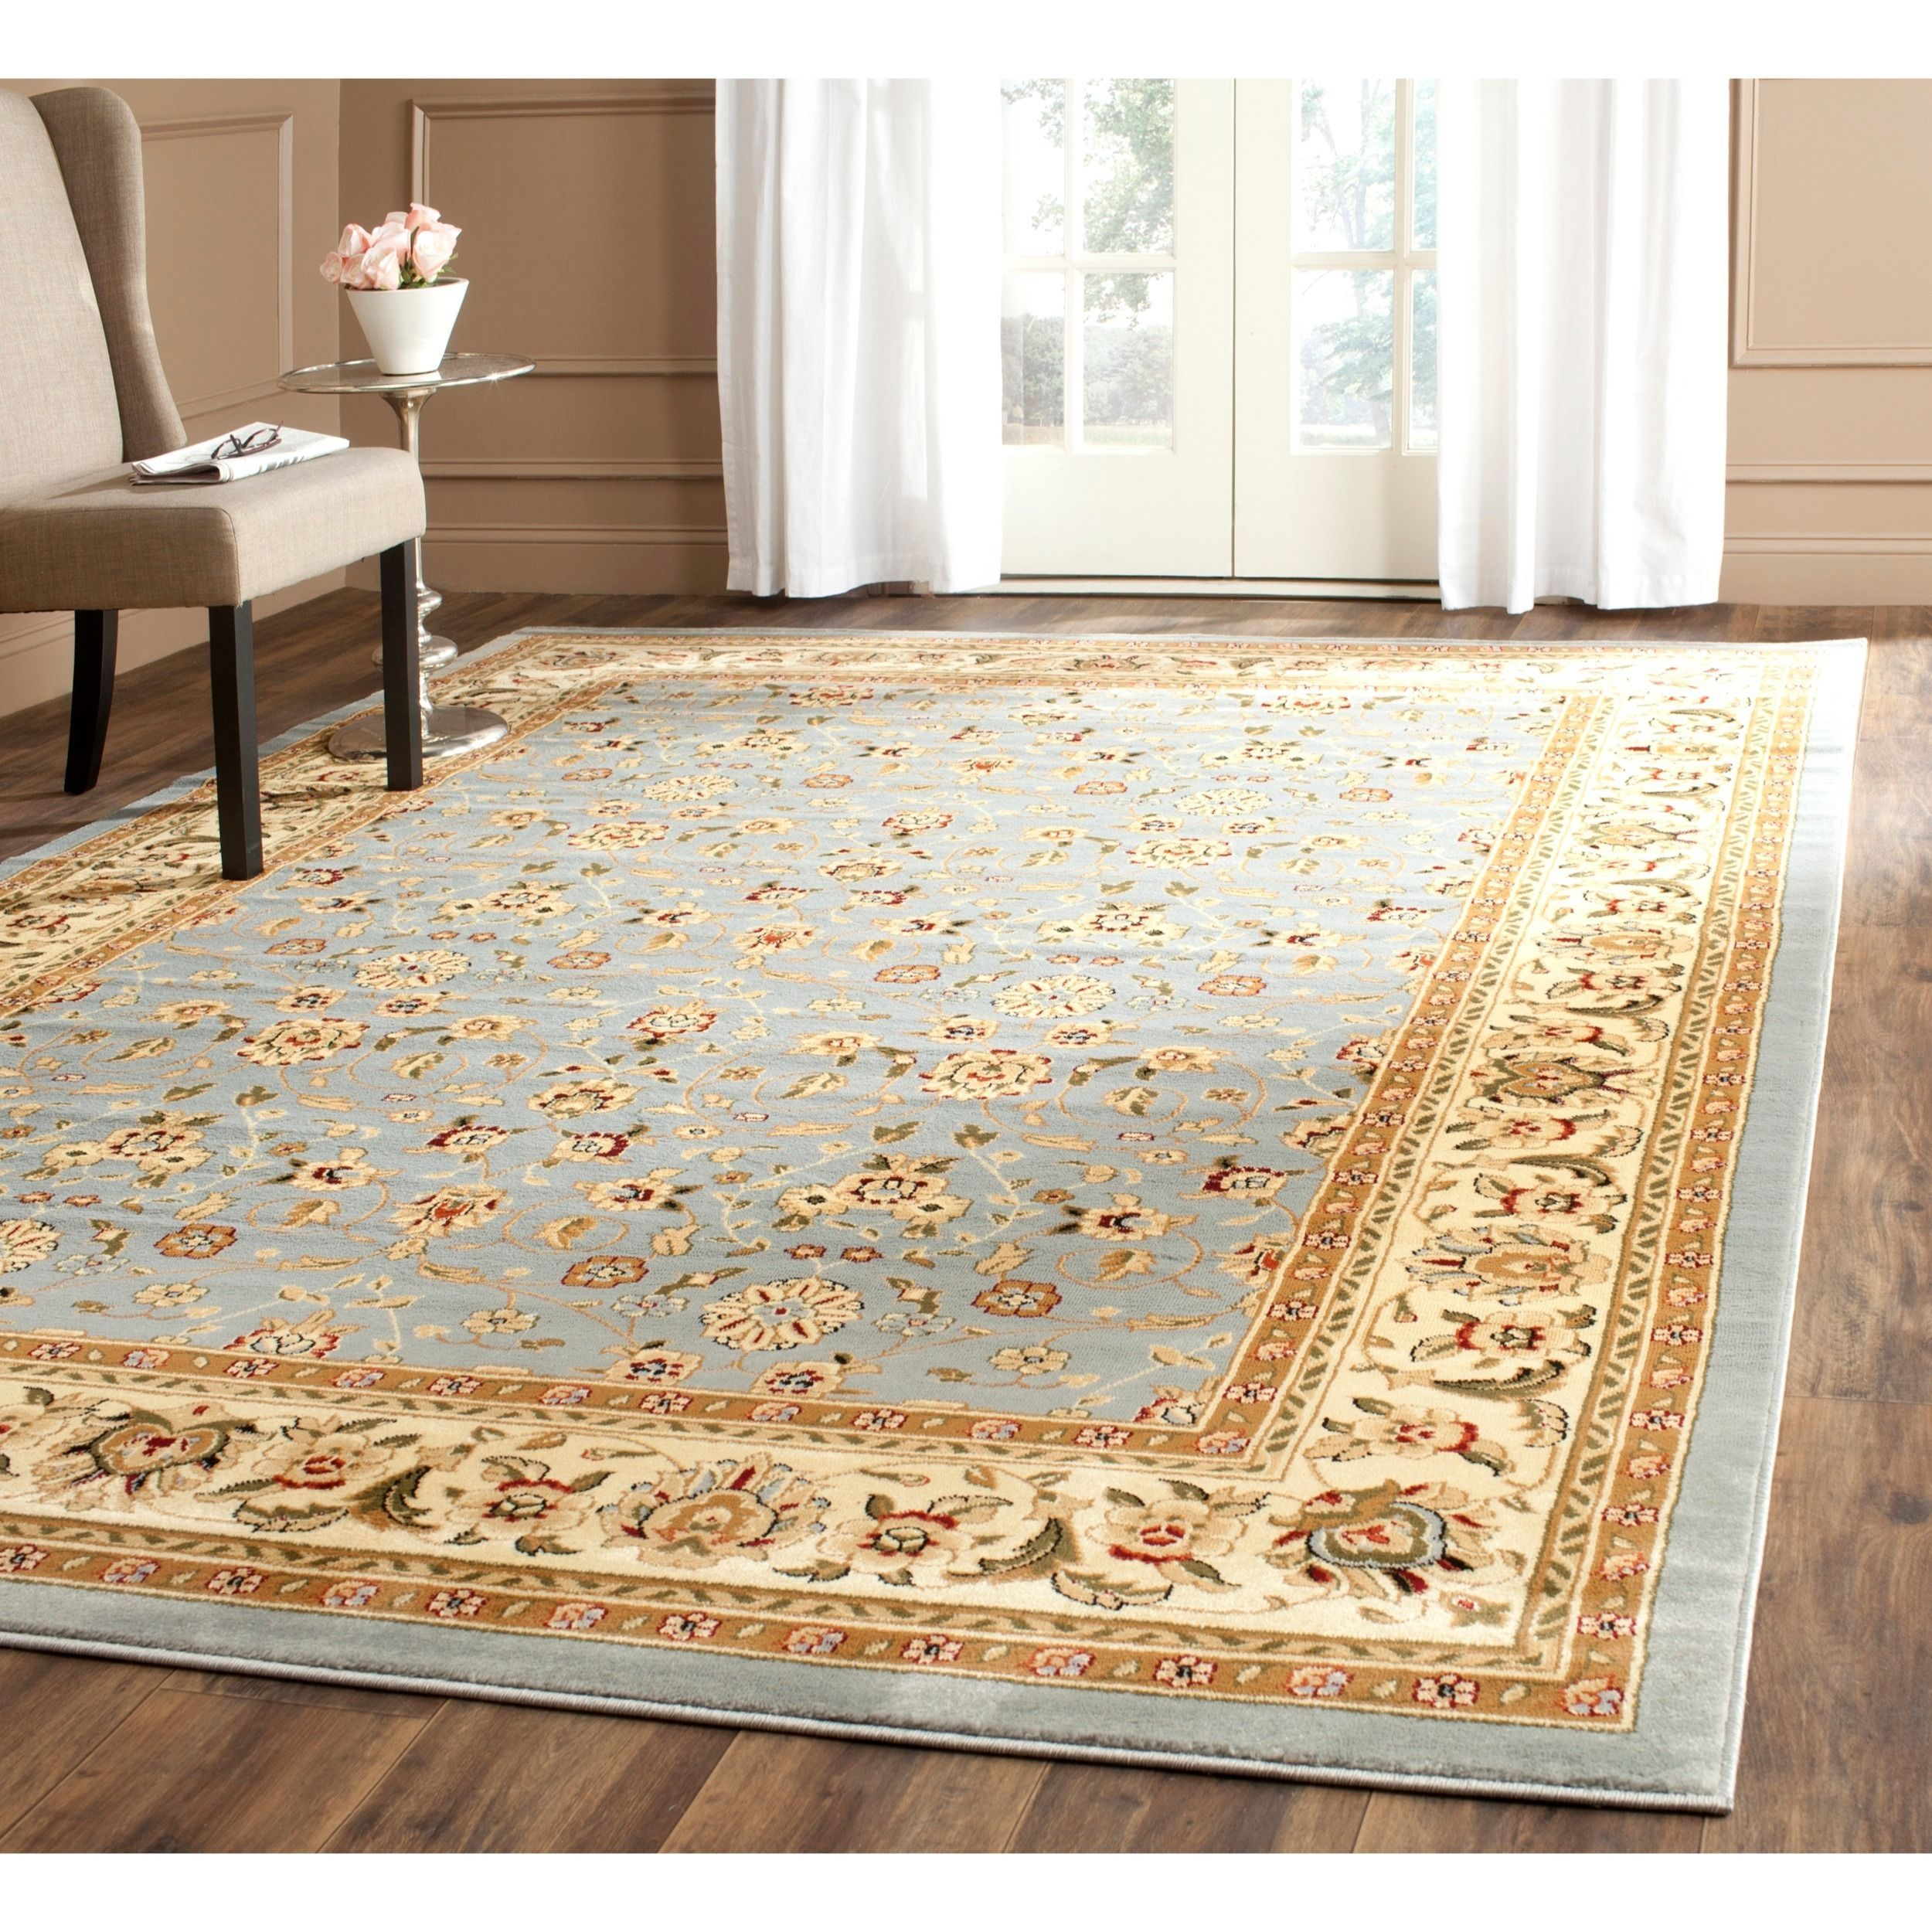 com ivory collection blue rug amazon x kitchen dining safavieh area evoke and osicqzql dp light contemporary